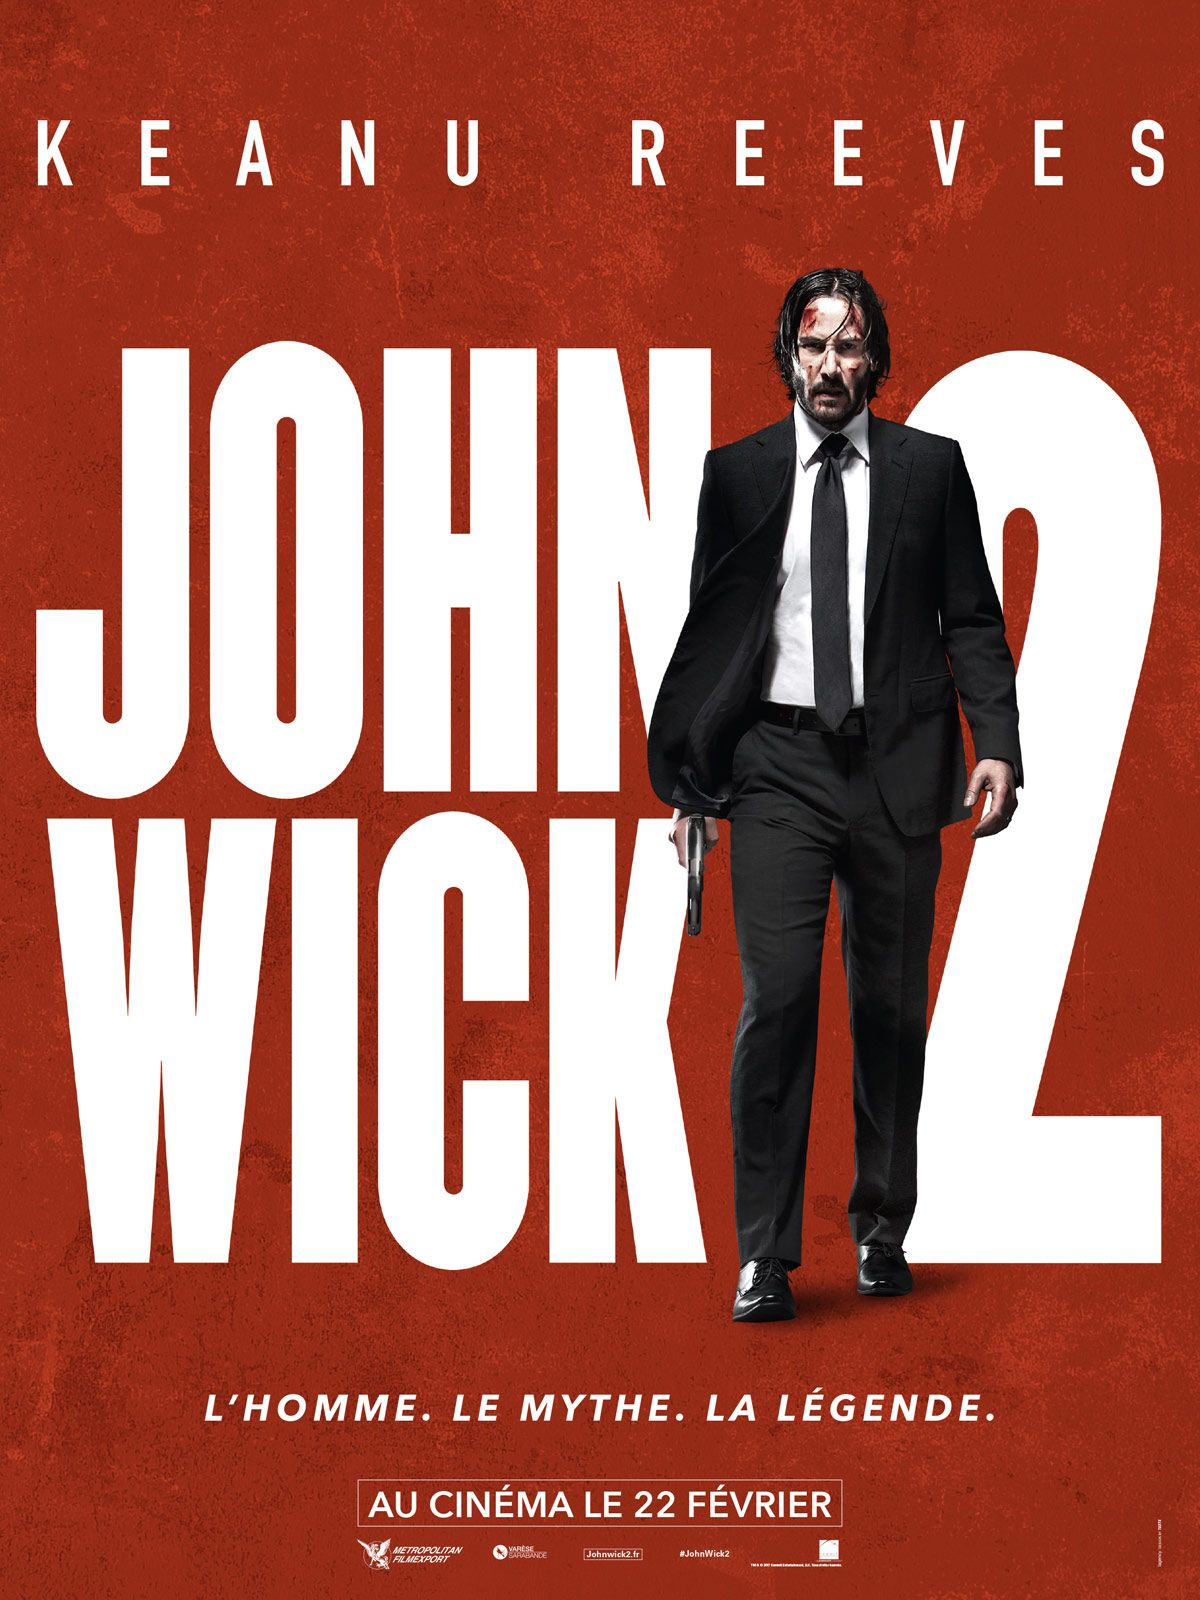 John Wick 1 Film Complet En Francais Streaming : complet, francais, streaming, Keanu, Reeves, Movie, Posters, Watch, Wick,, Streaming, Movies